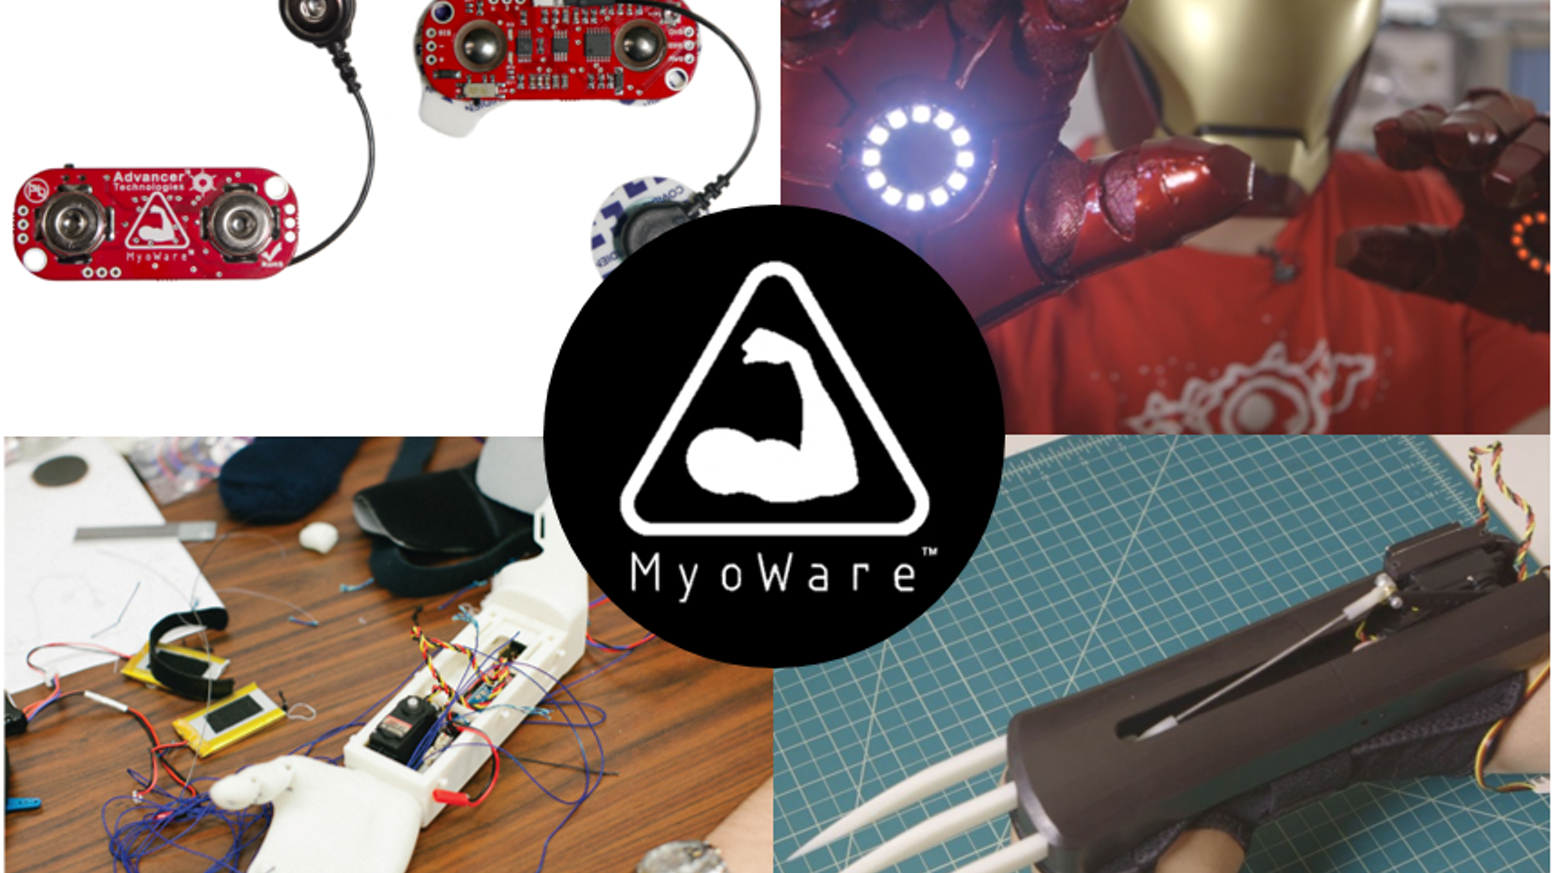 Wearable Muscle Sensor Platform - 4th-gen sensor - Arduino compatible - Control robots, prosthetics, video games, & more!